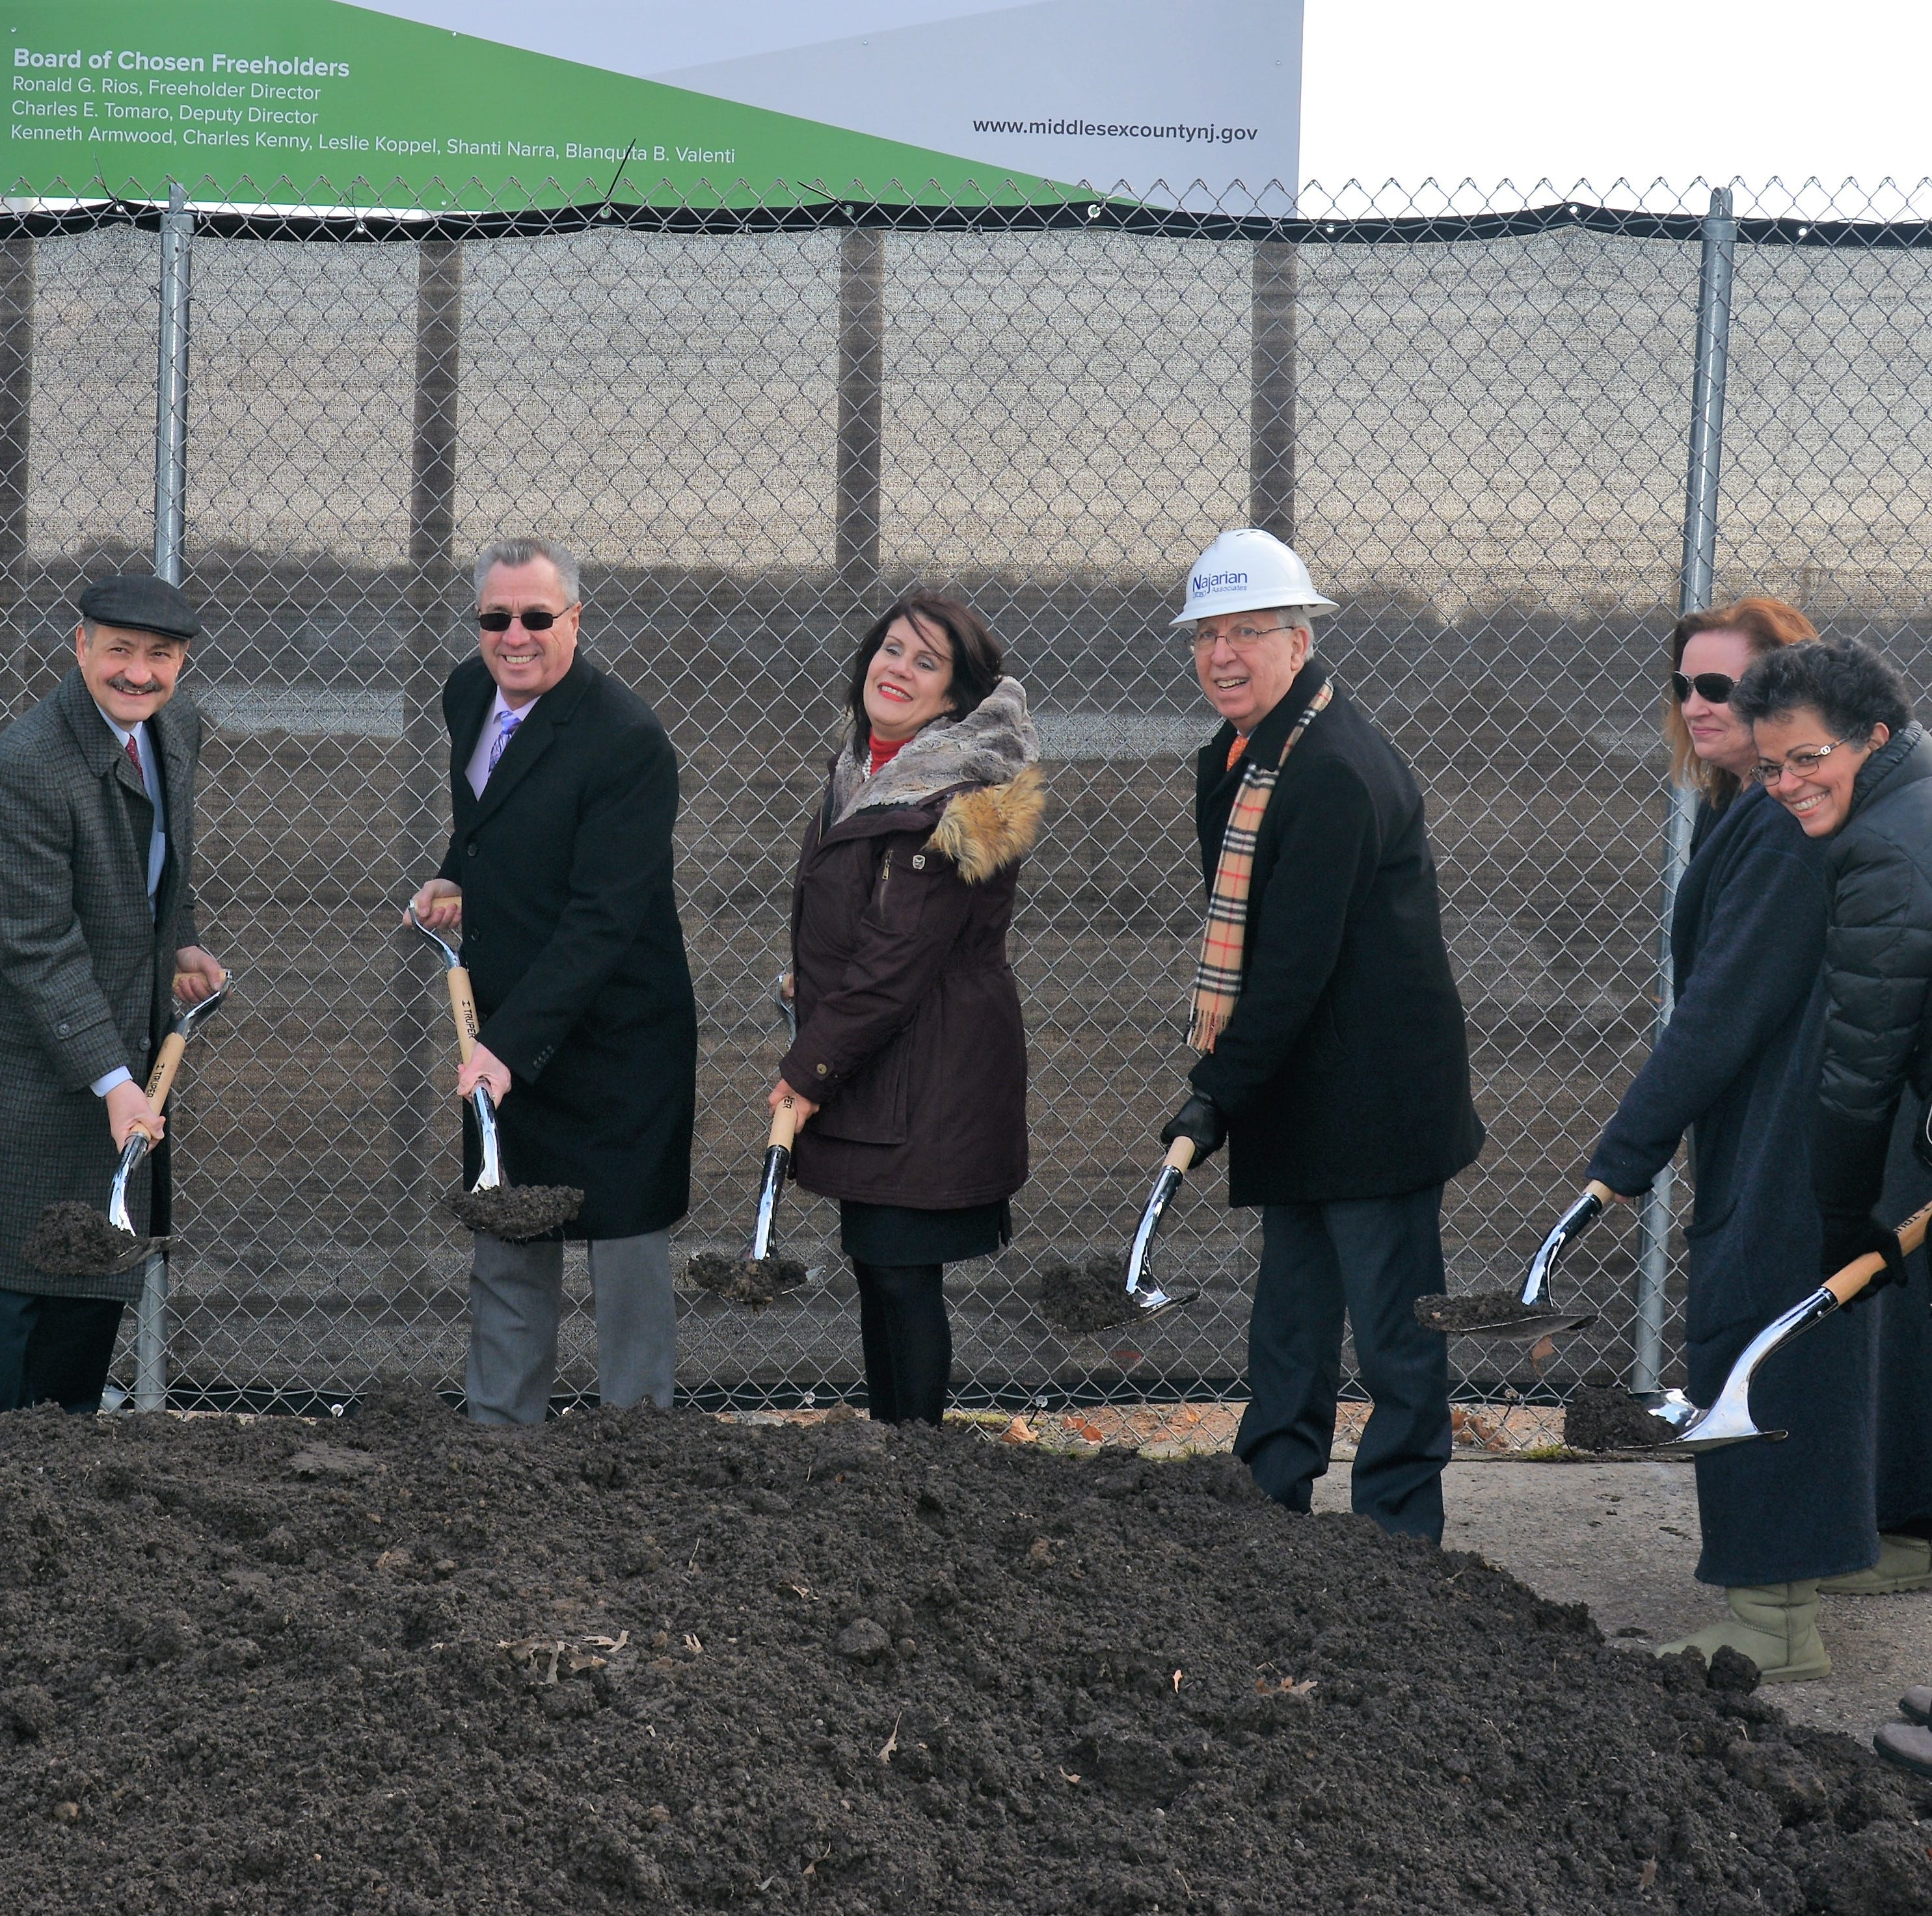 Middlesex County breaks ground on Perth Amboy Waterfront Park